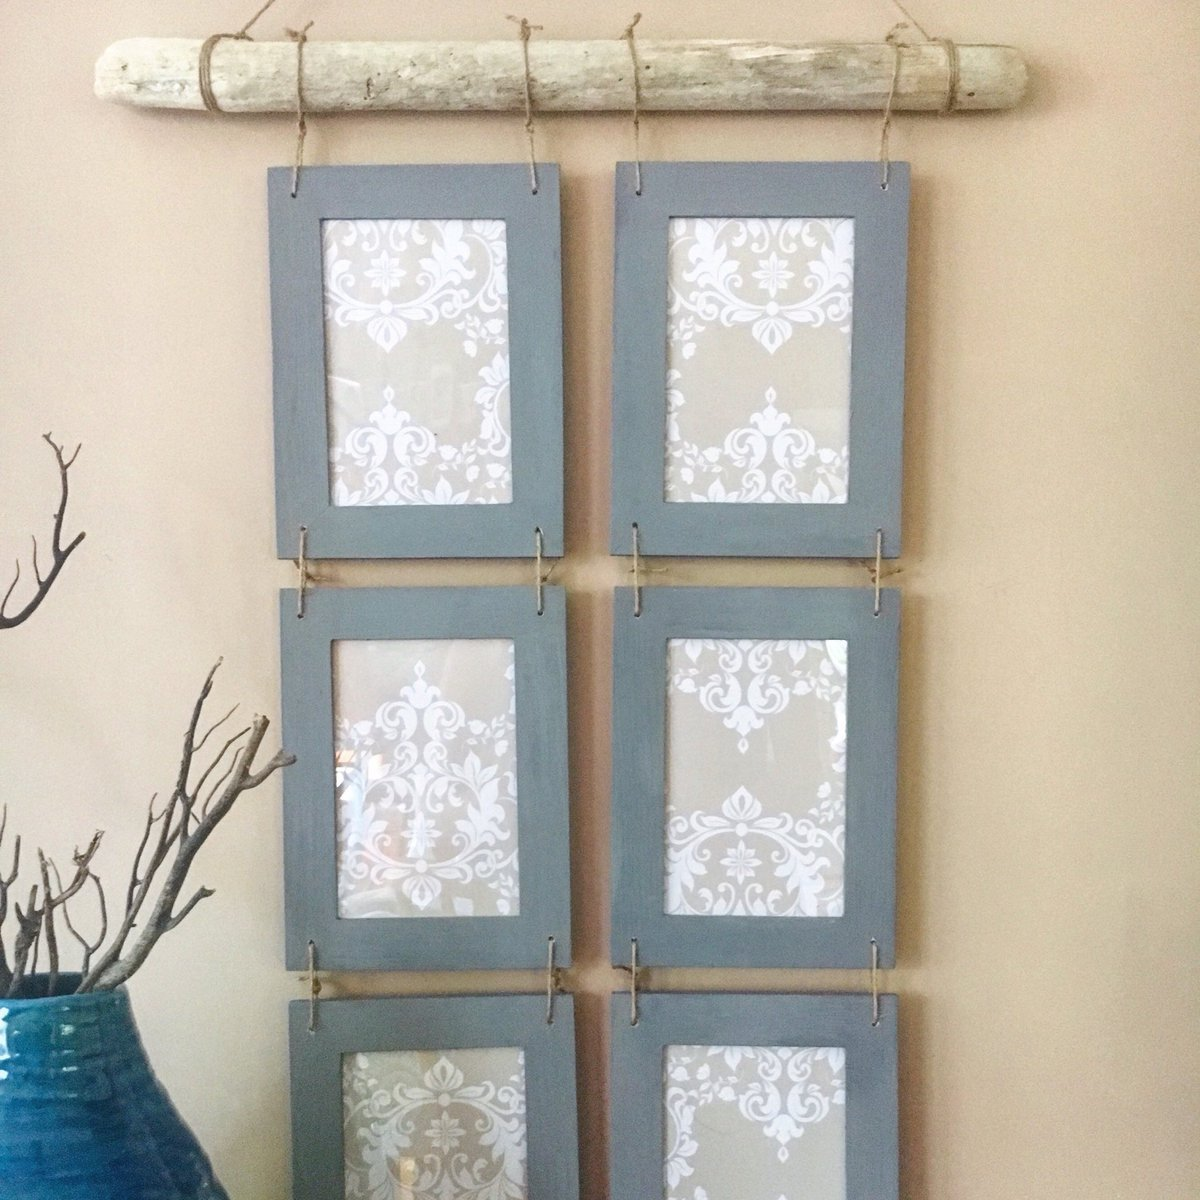 Check out #upcycling genius @sweep_of_sand #shopsmall #supportsmallbusiness #etsyseller  https://www. etsy.com/uk/shop/SweepO fSand?ref=l2-shopheader-name &nbsp; … <br>http://pic.twitter.com/UjNfrX7hCA